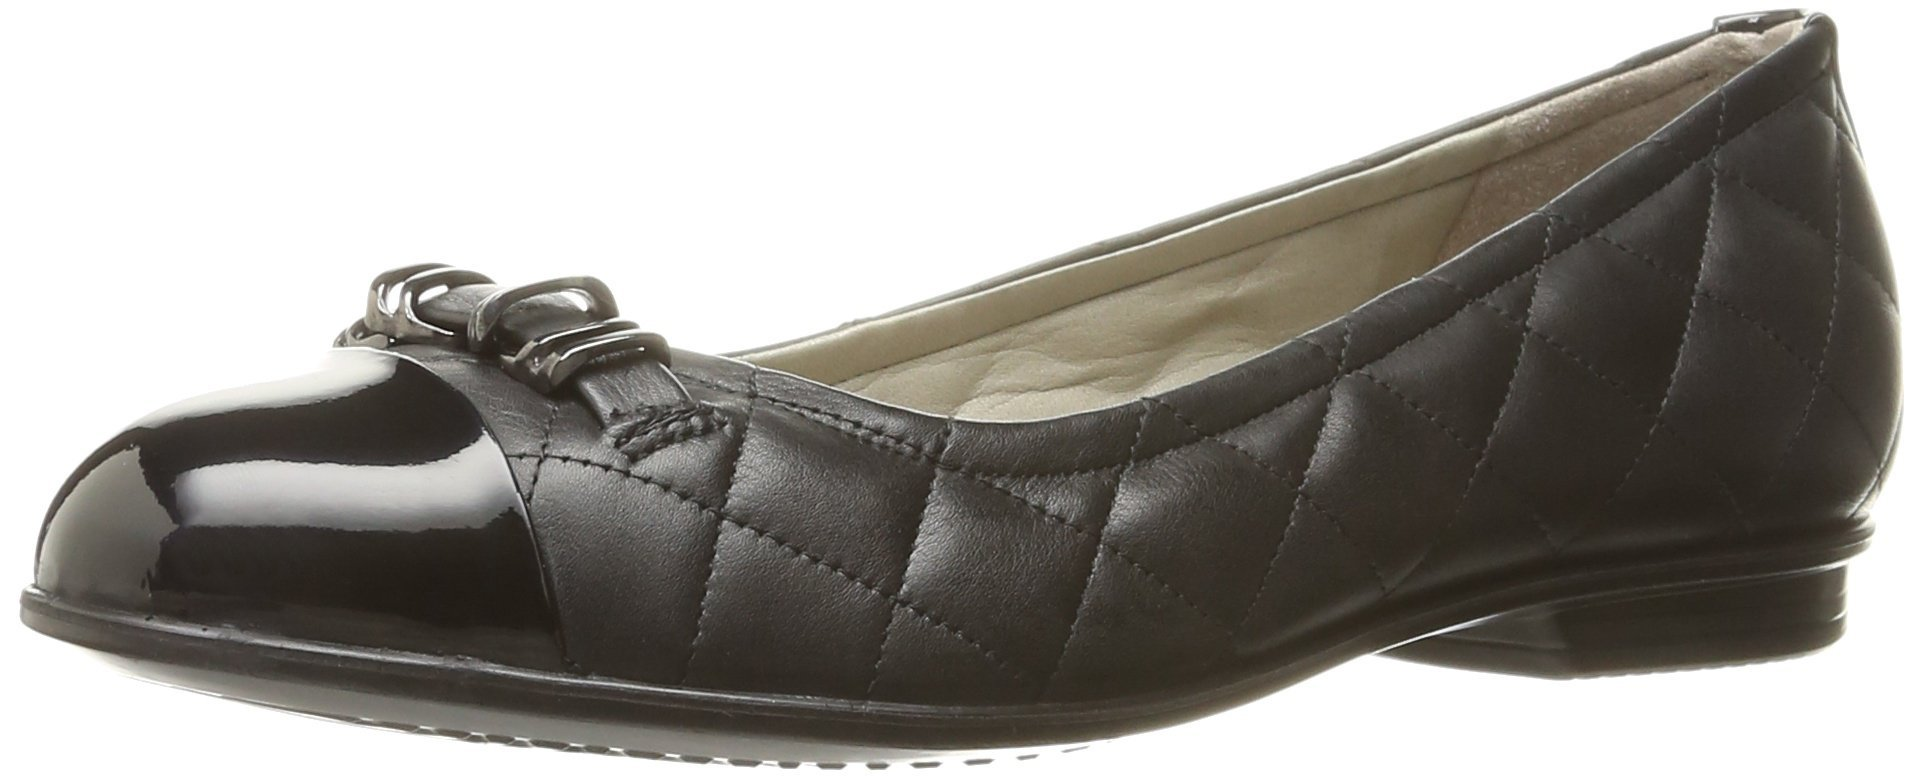 ECCO Footwear Womens Touch Quilted Ballerina Ballet Flat, Black/Black, 38 EU/7-7.5 M US